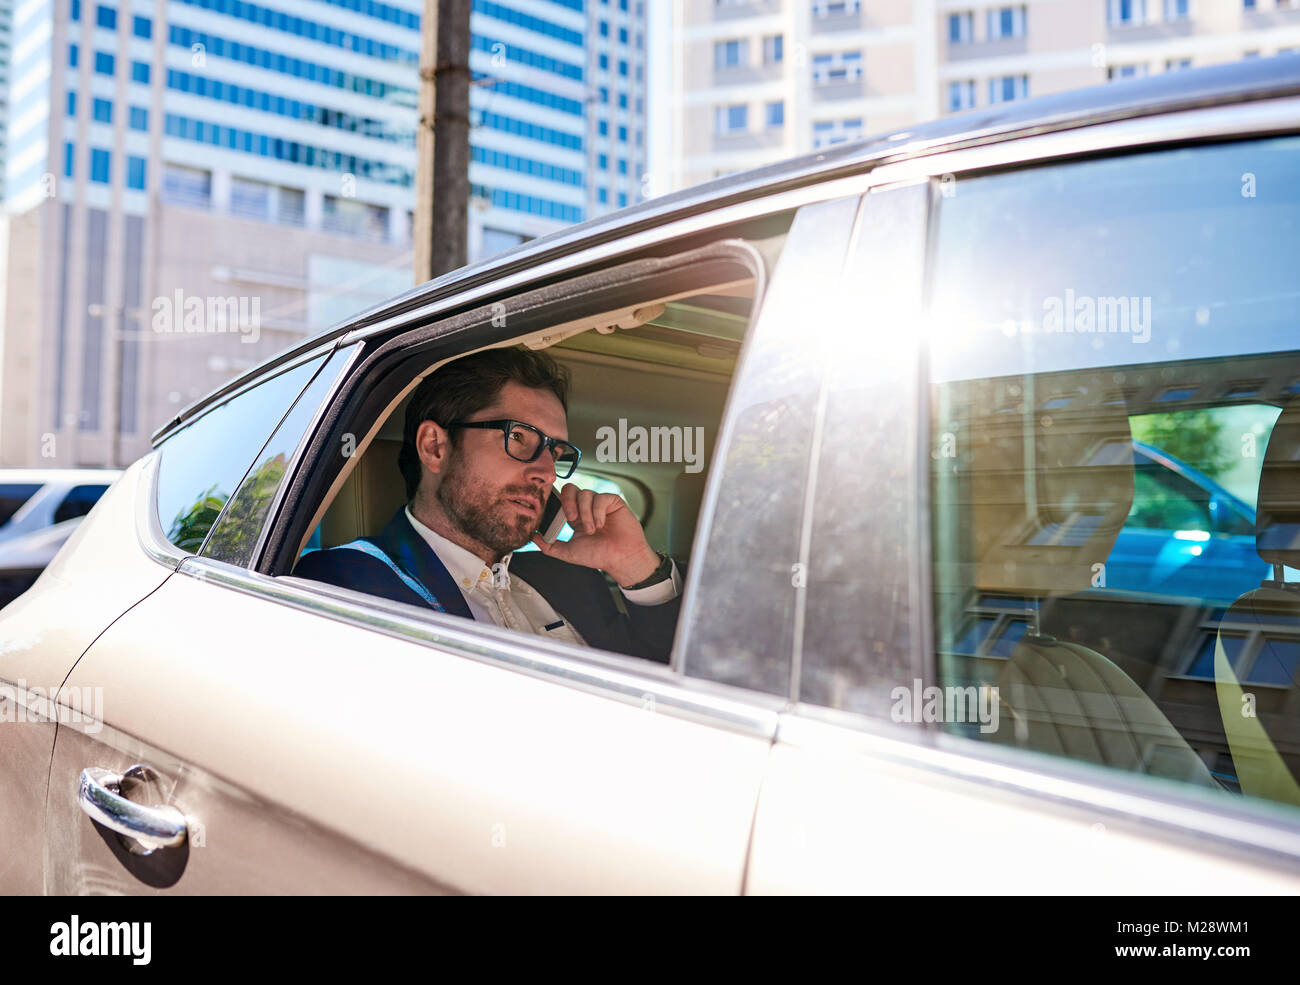 Young businessman sitting in the backseat of a car talking on a cellphone while being driven through the city - Stock Image